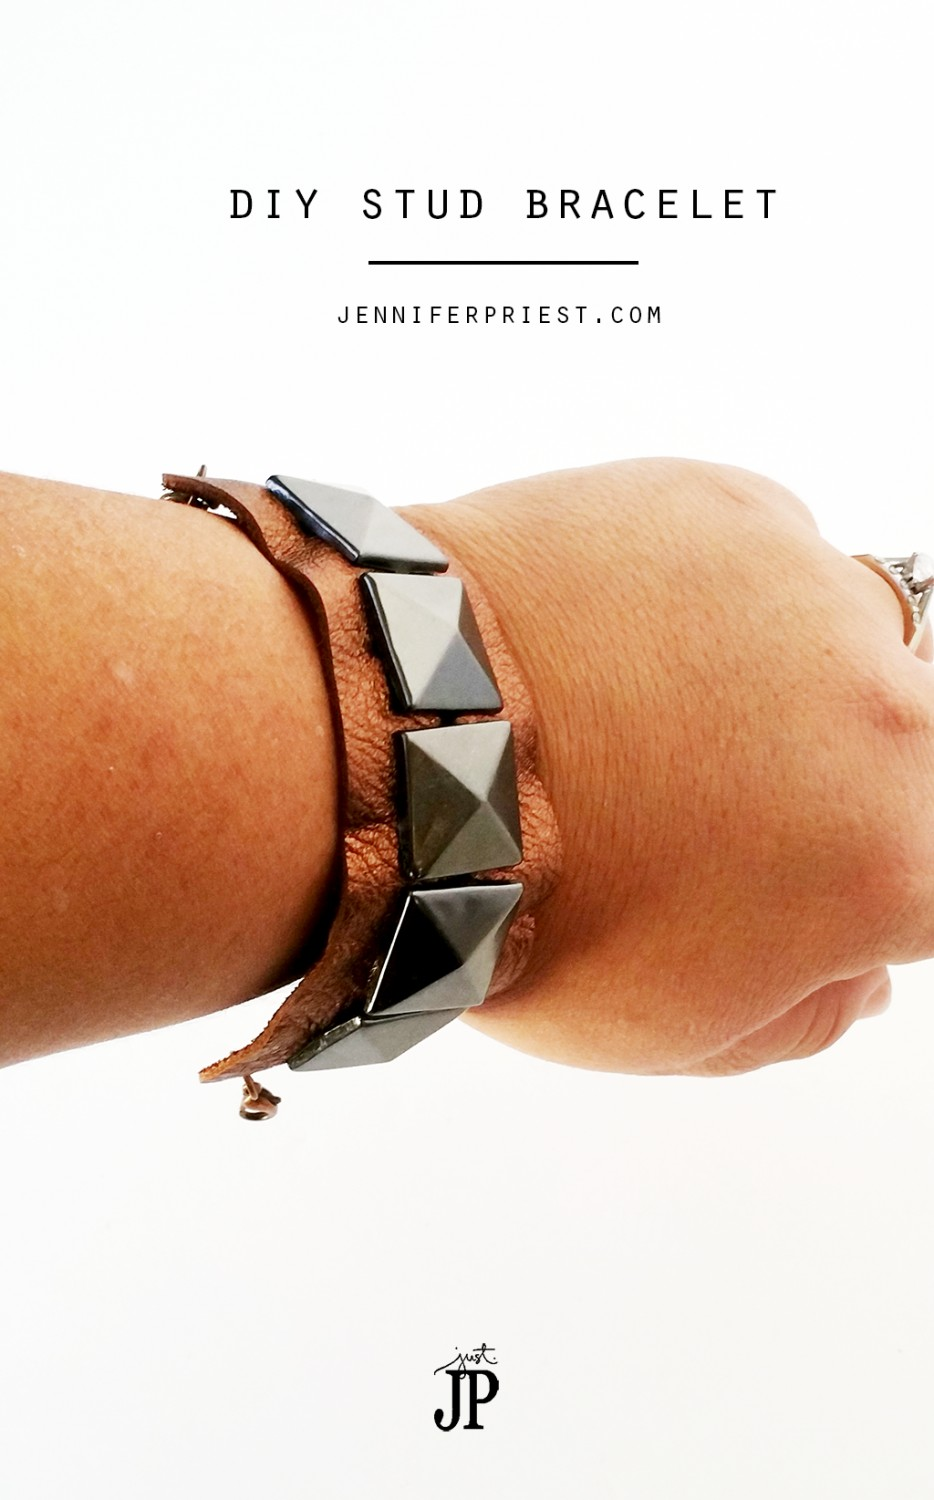 Stud-Bracelet-with-Leather-JPriest-JPHalloween-MAIN